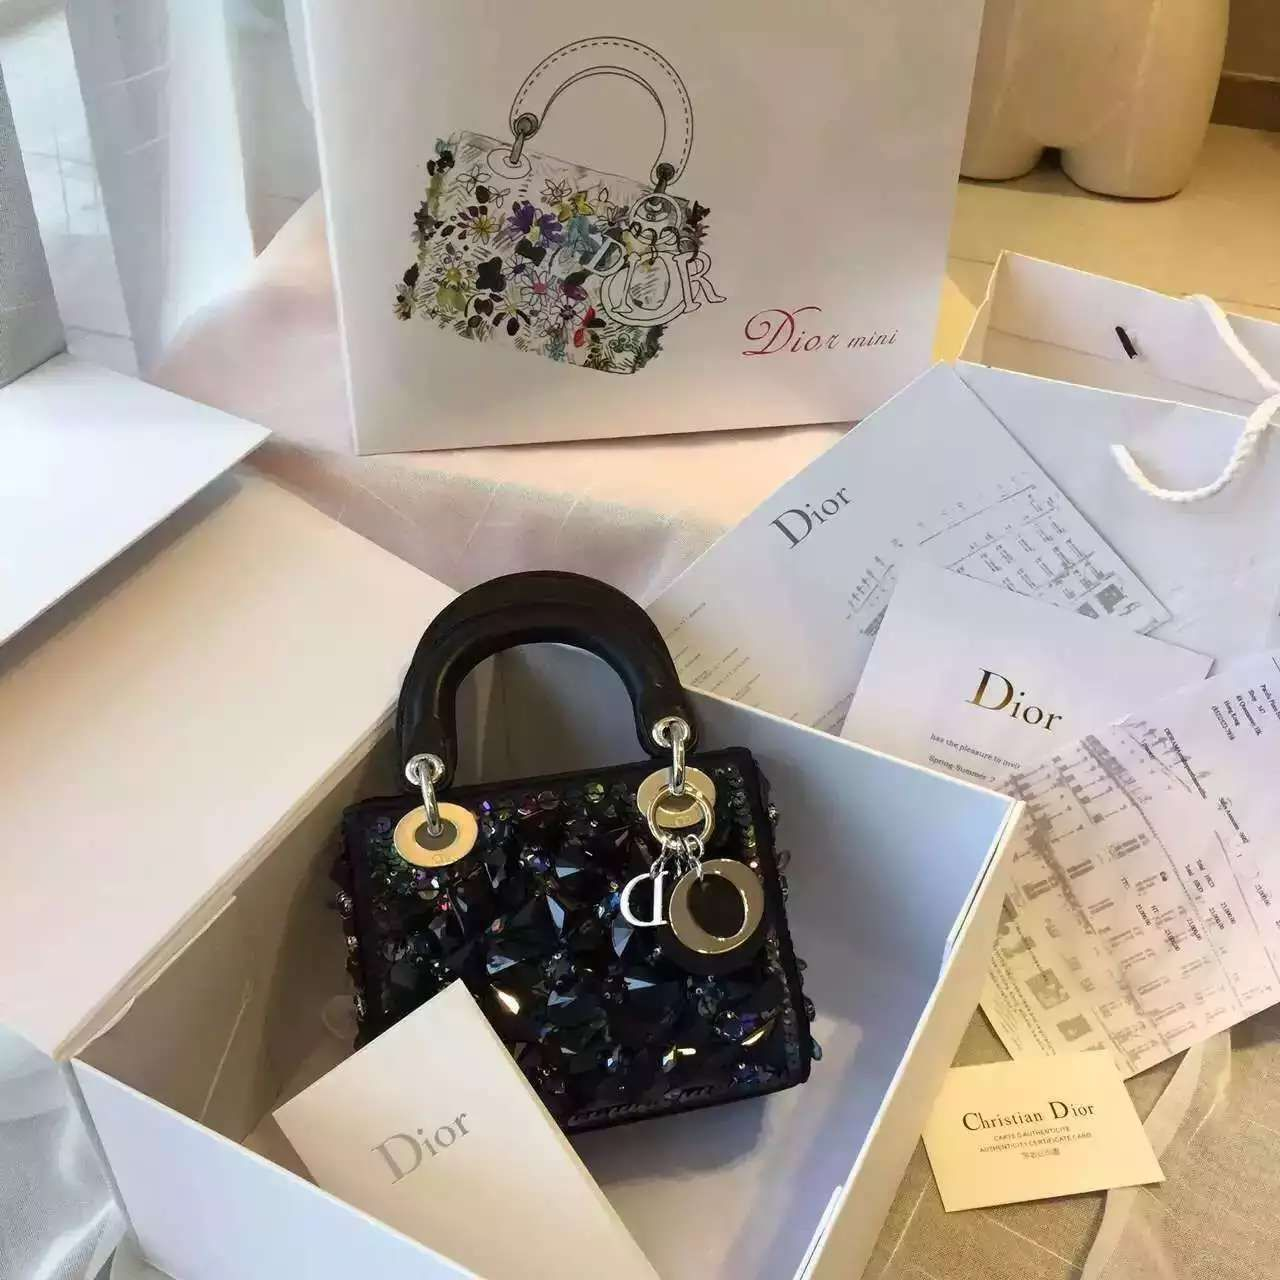 dior Bag, ID : 46768(FORSALE:a@yybags.com), dior ladies wallets, dior shop for bags, dior backpacks for hiking, dior ladies wallets, dior backpack on wheels, dior zipper wallet, dior leather bags for women, dior funky handbags, dior backpack shop, dior briefcase online, dior green leather handbag, dior backpack for laptop #diorBag #dior #銉囥偅銈兗銉�